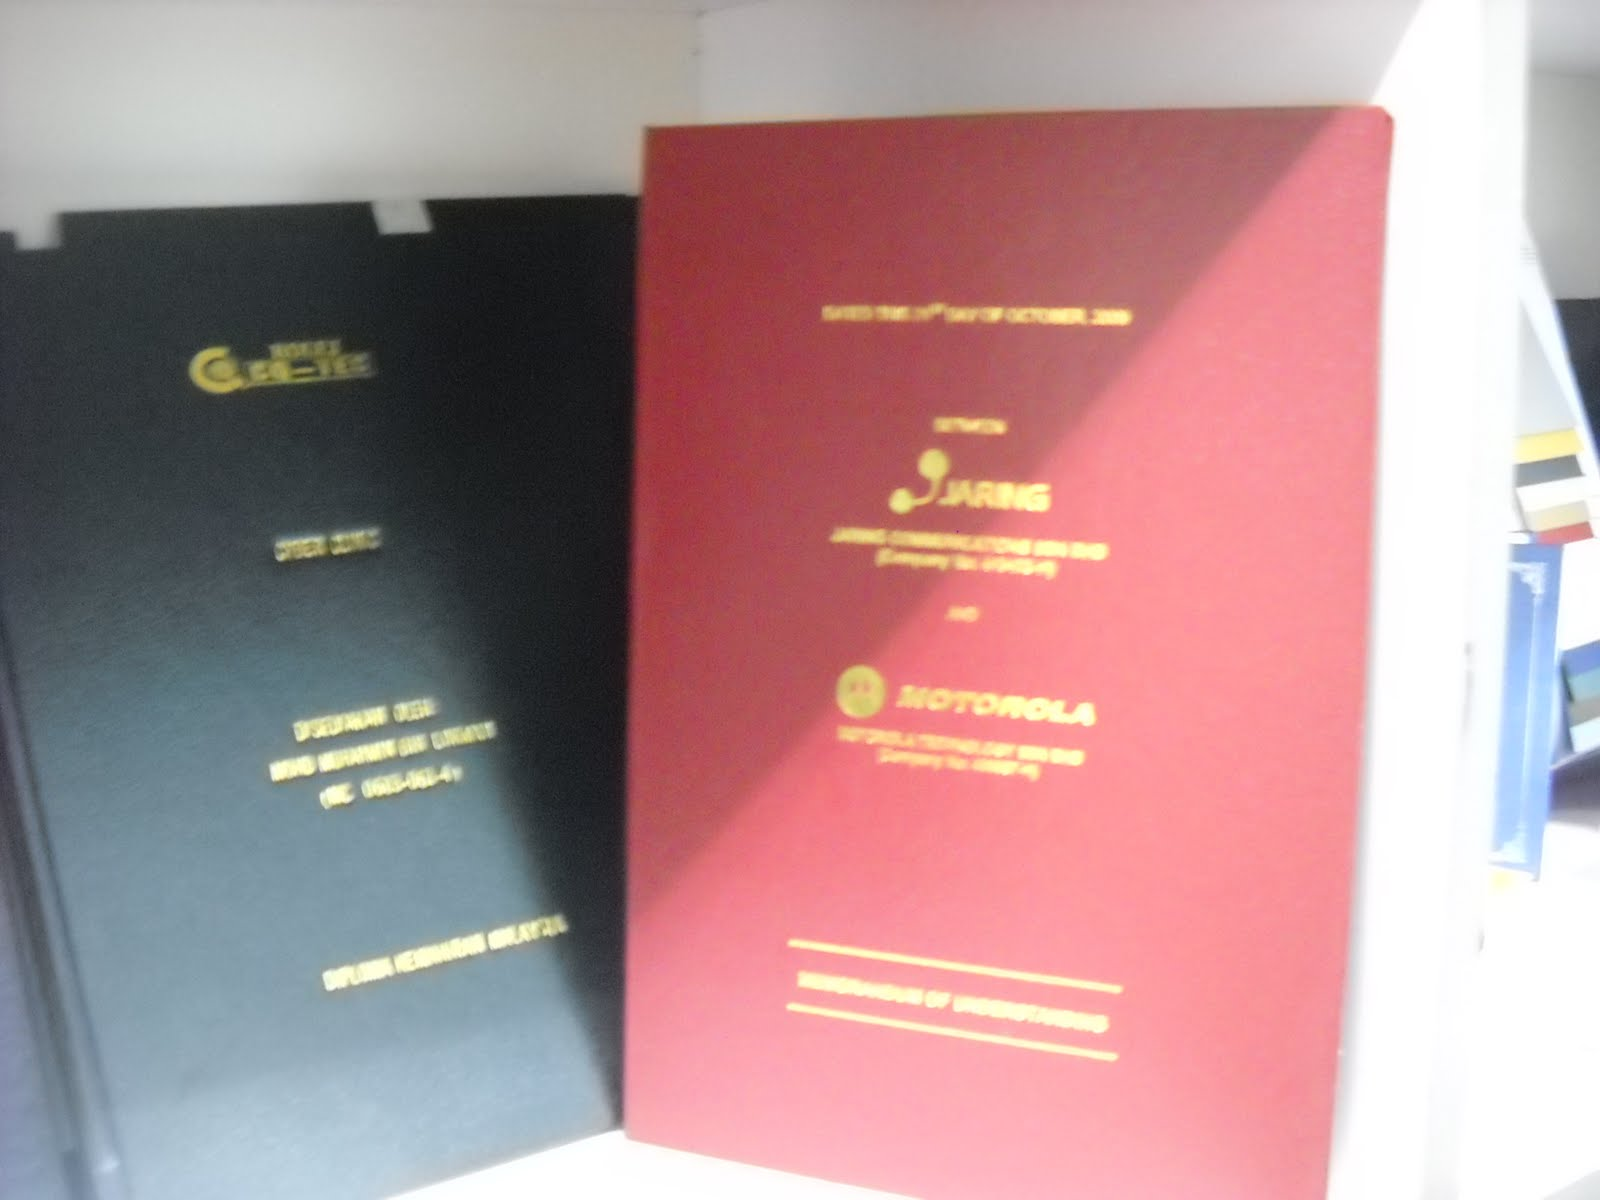 thesis hardcover binding